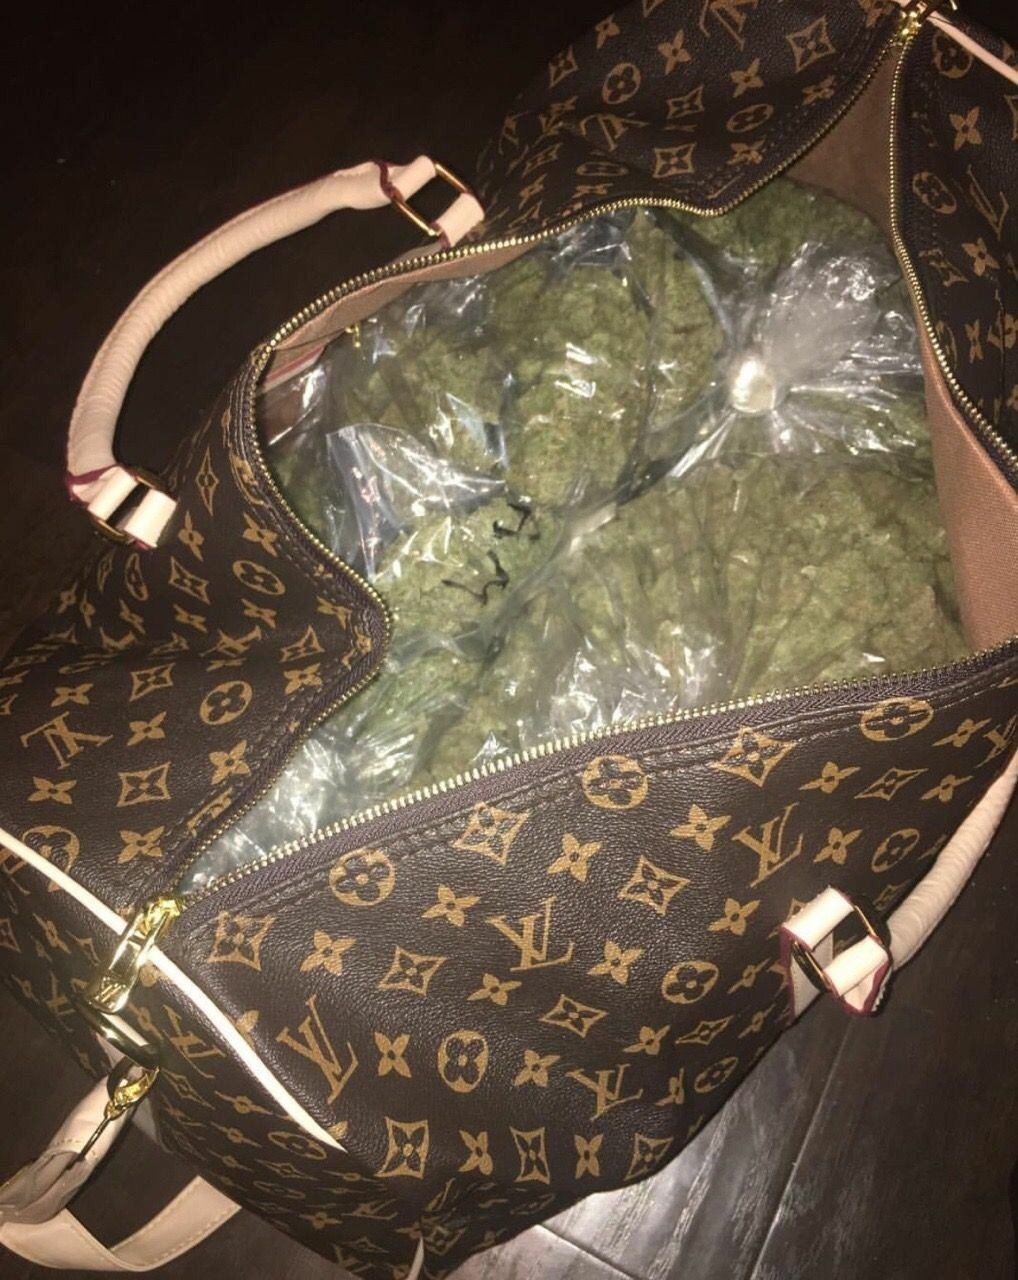 When You Show Up To A Party With Bag Of Weed At Least Come